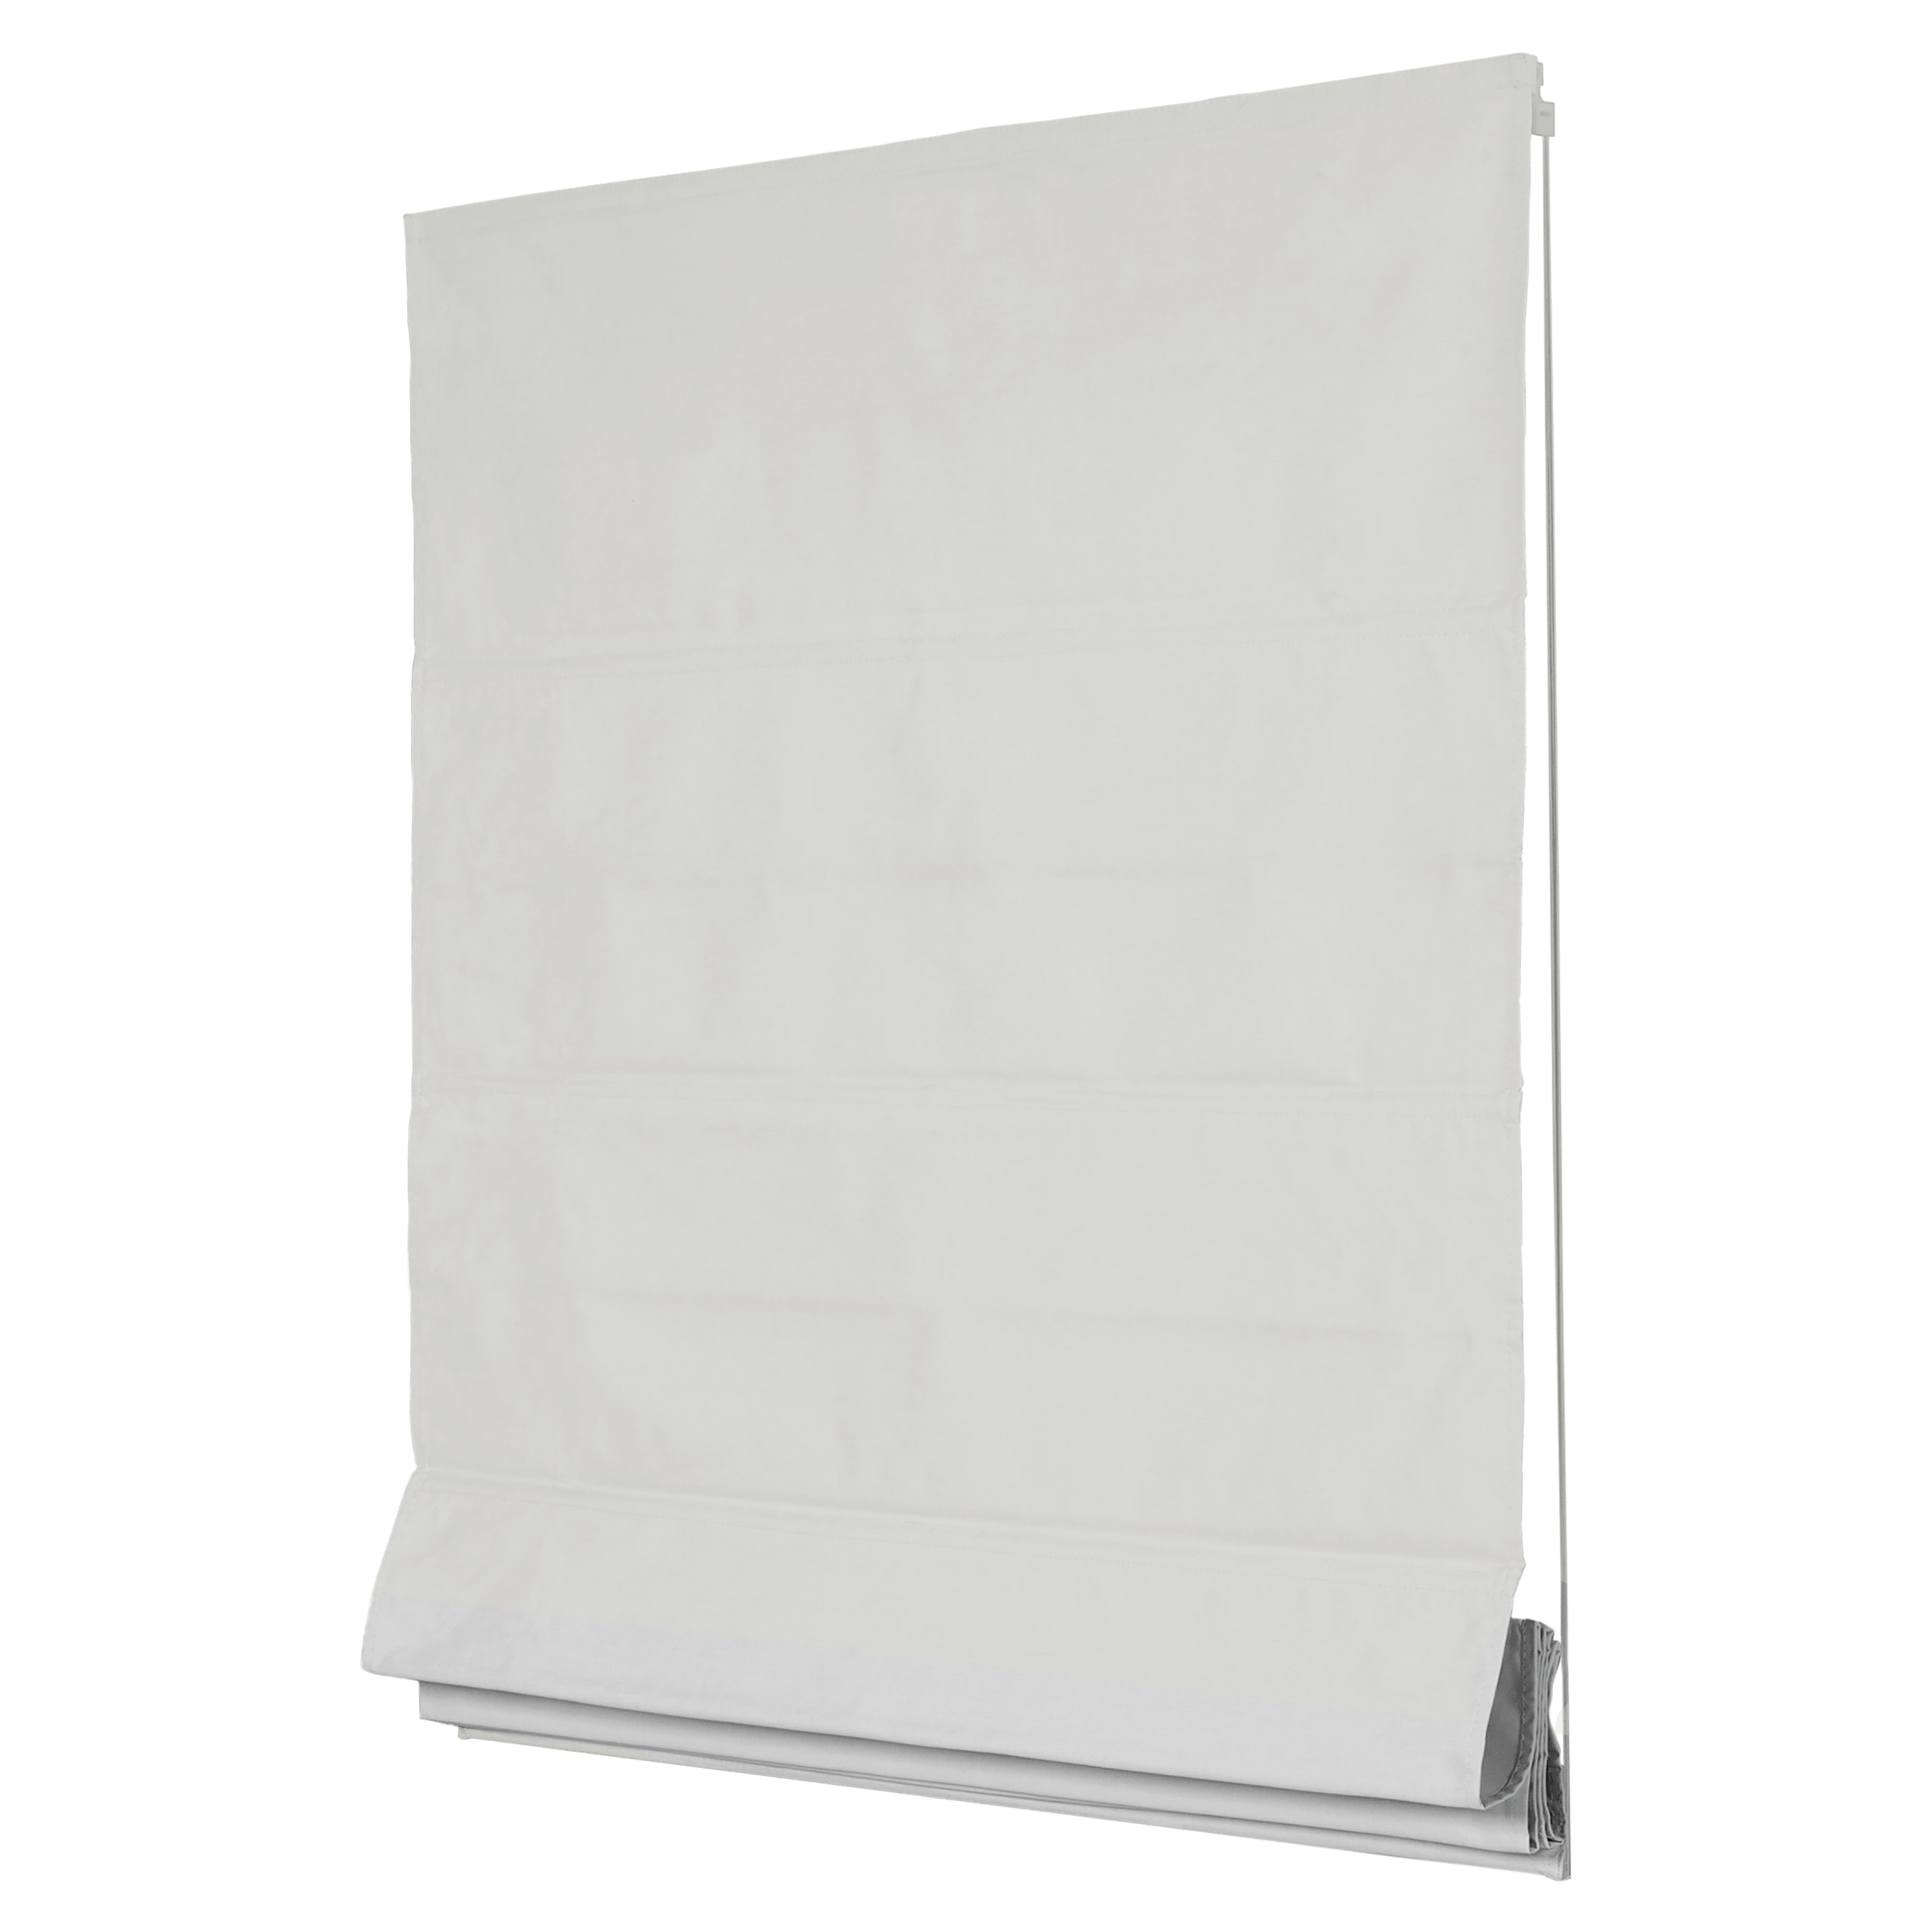 Intensions Roman Blind - 2ft - White.